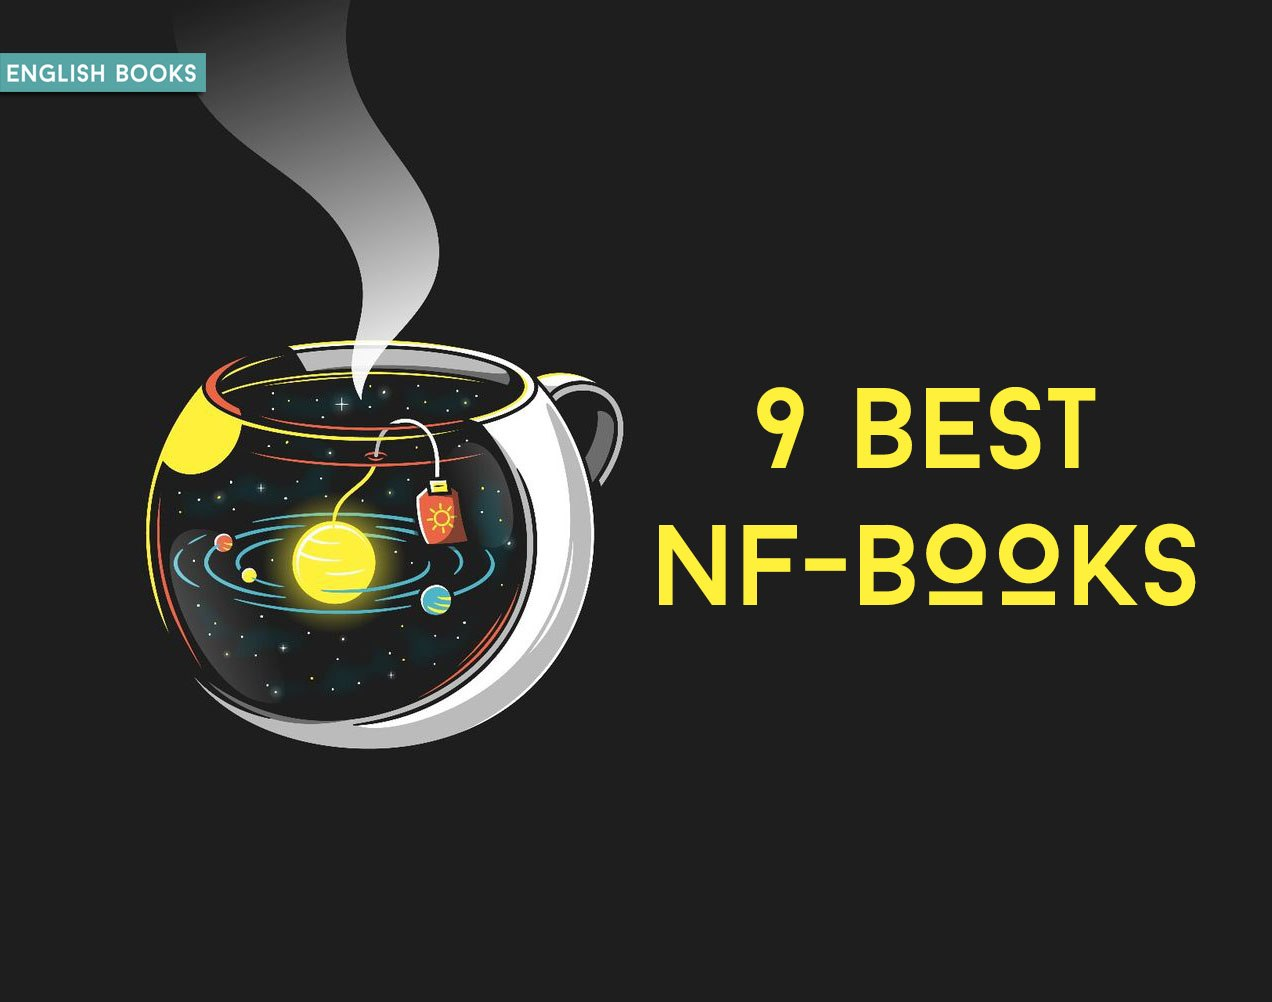 9 BEST NF BOOKS